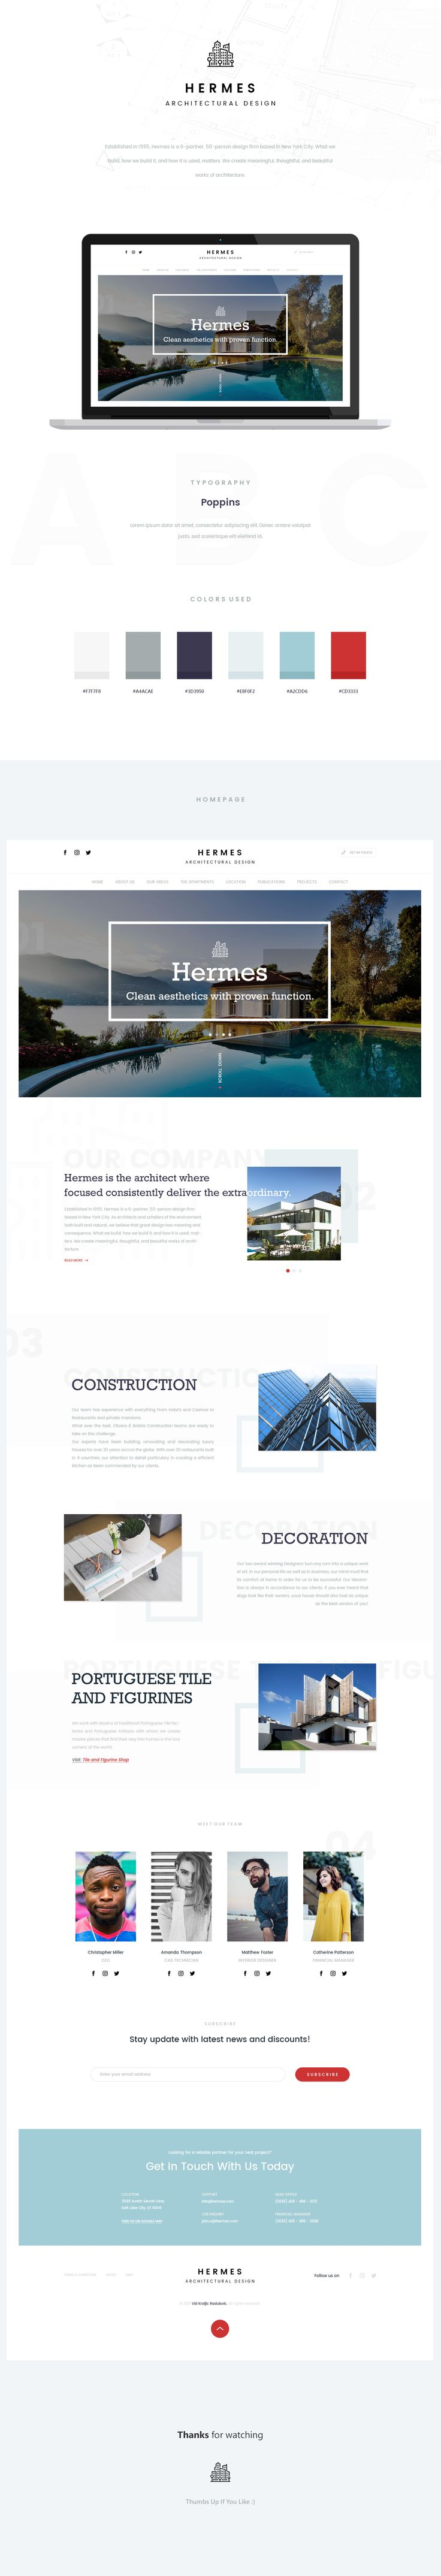 Hermes Architectural Design - Landing page for company, that provides architectural services.